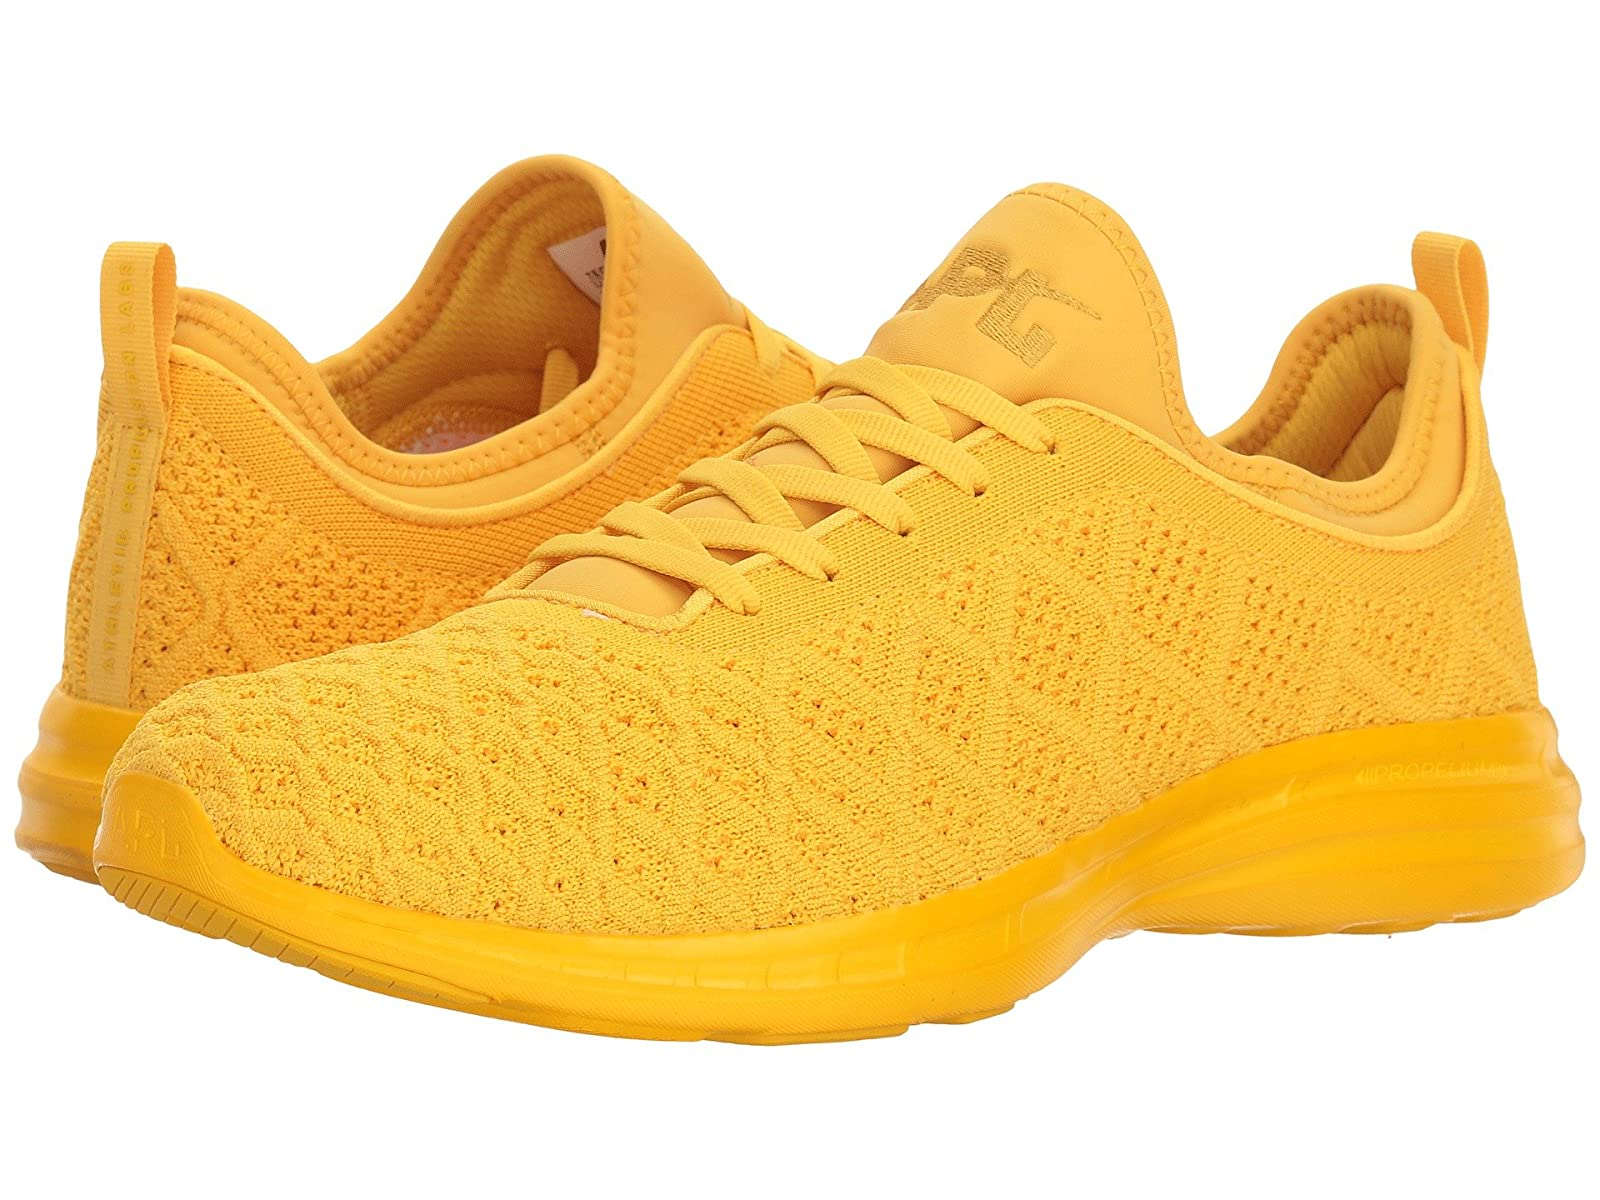 Athletic Propulsion Labs (APL) Techloom PhantomCheap and distinctive eye-catching shoes